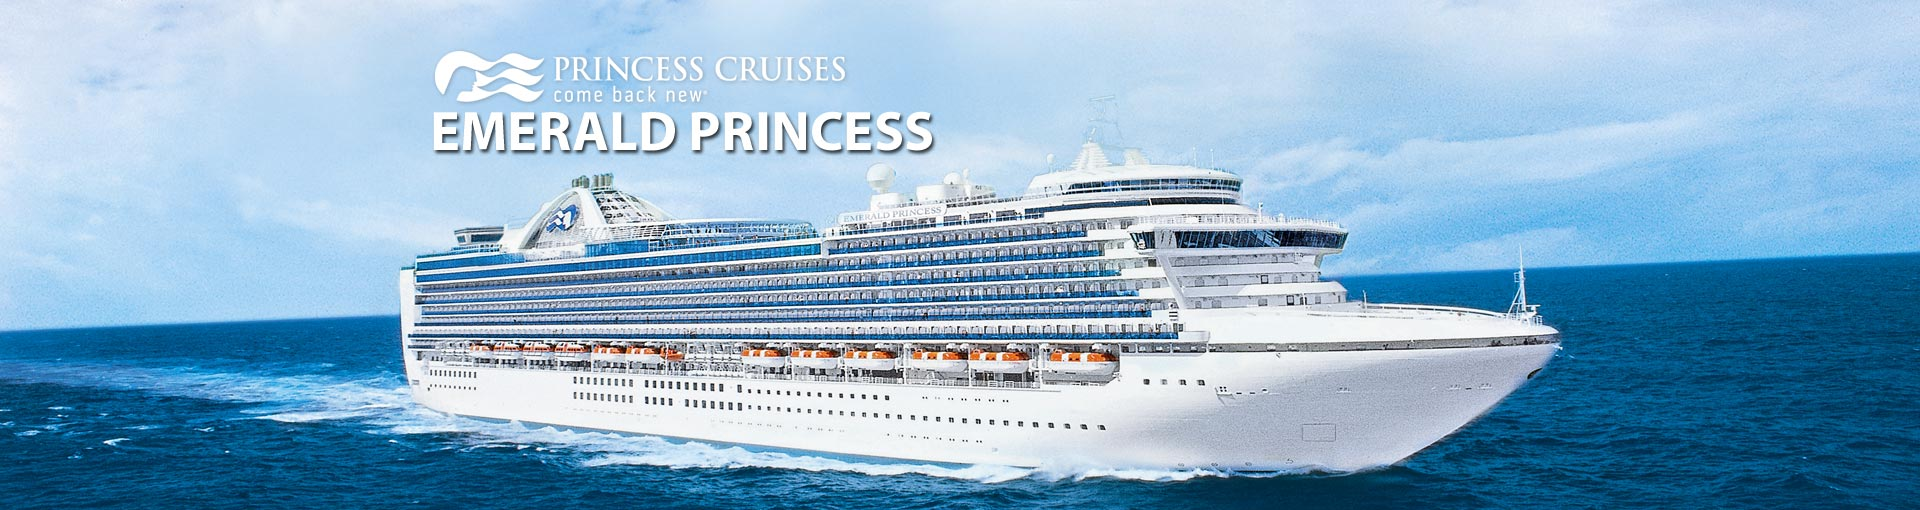 Emerald Princess Cruise Ship 2017 And 2018 Emerald